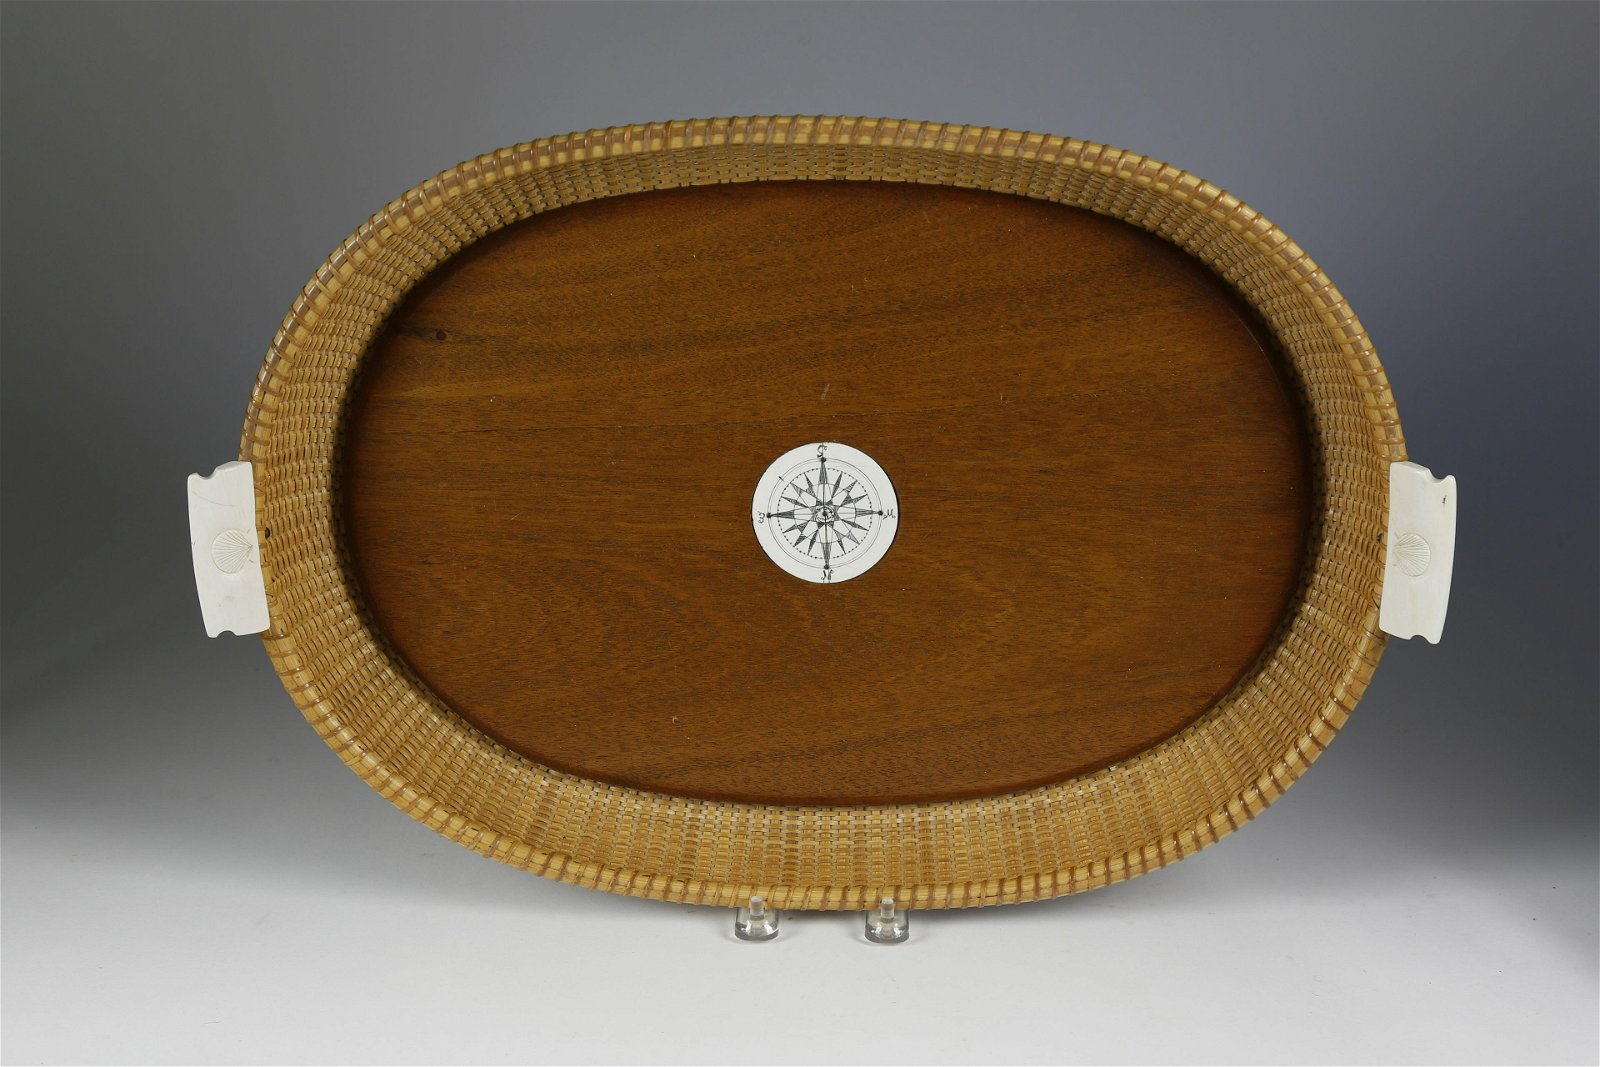 Bill and Judy Sayle Nantucket Oval Serving Tray, 1982